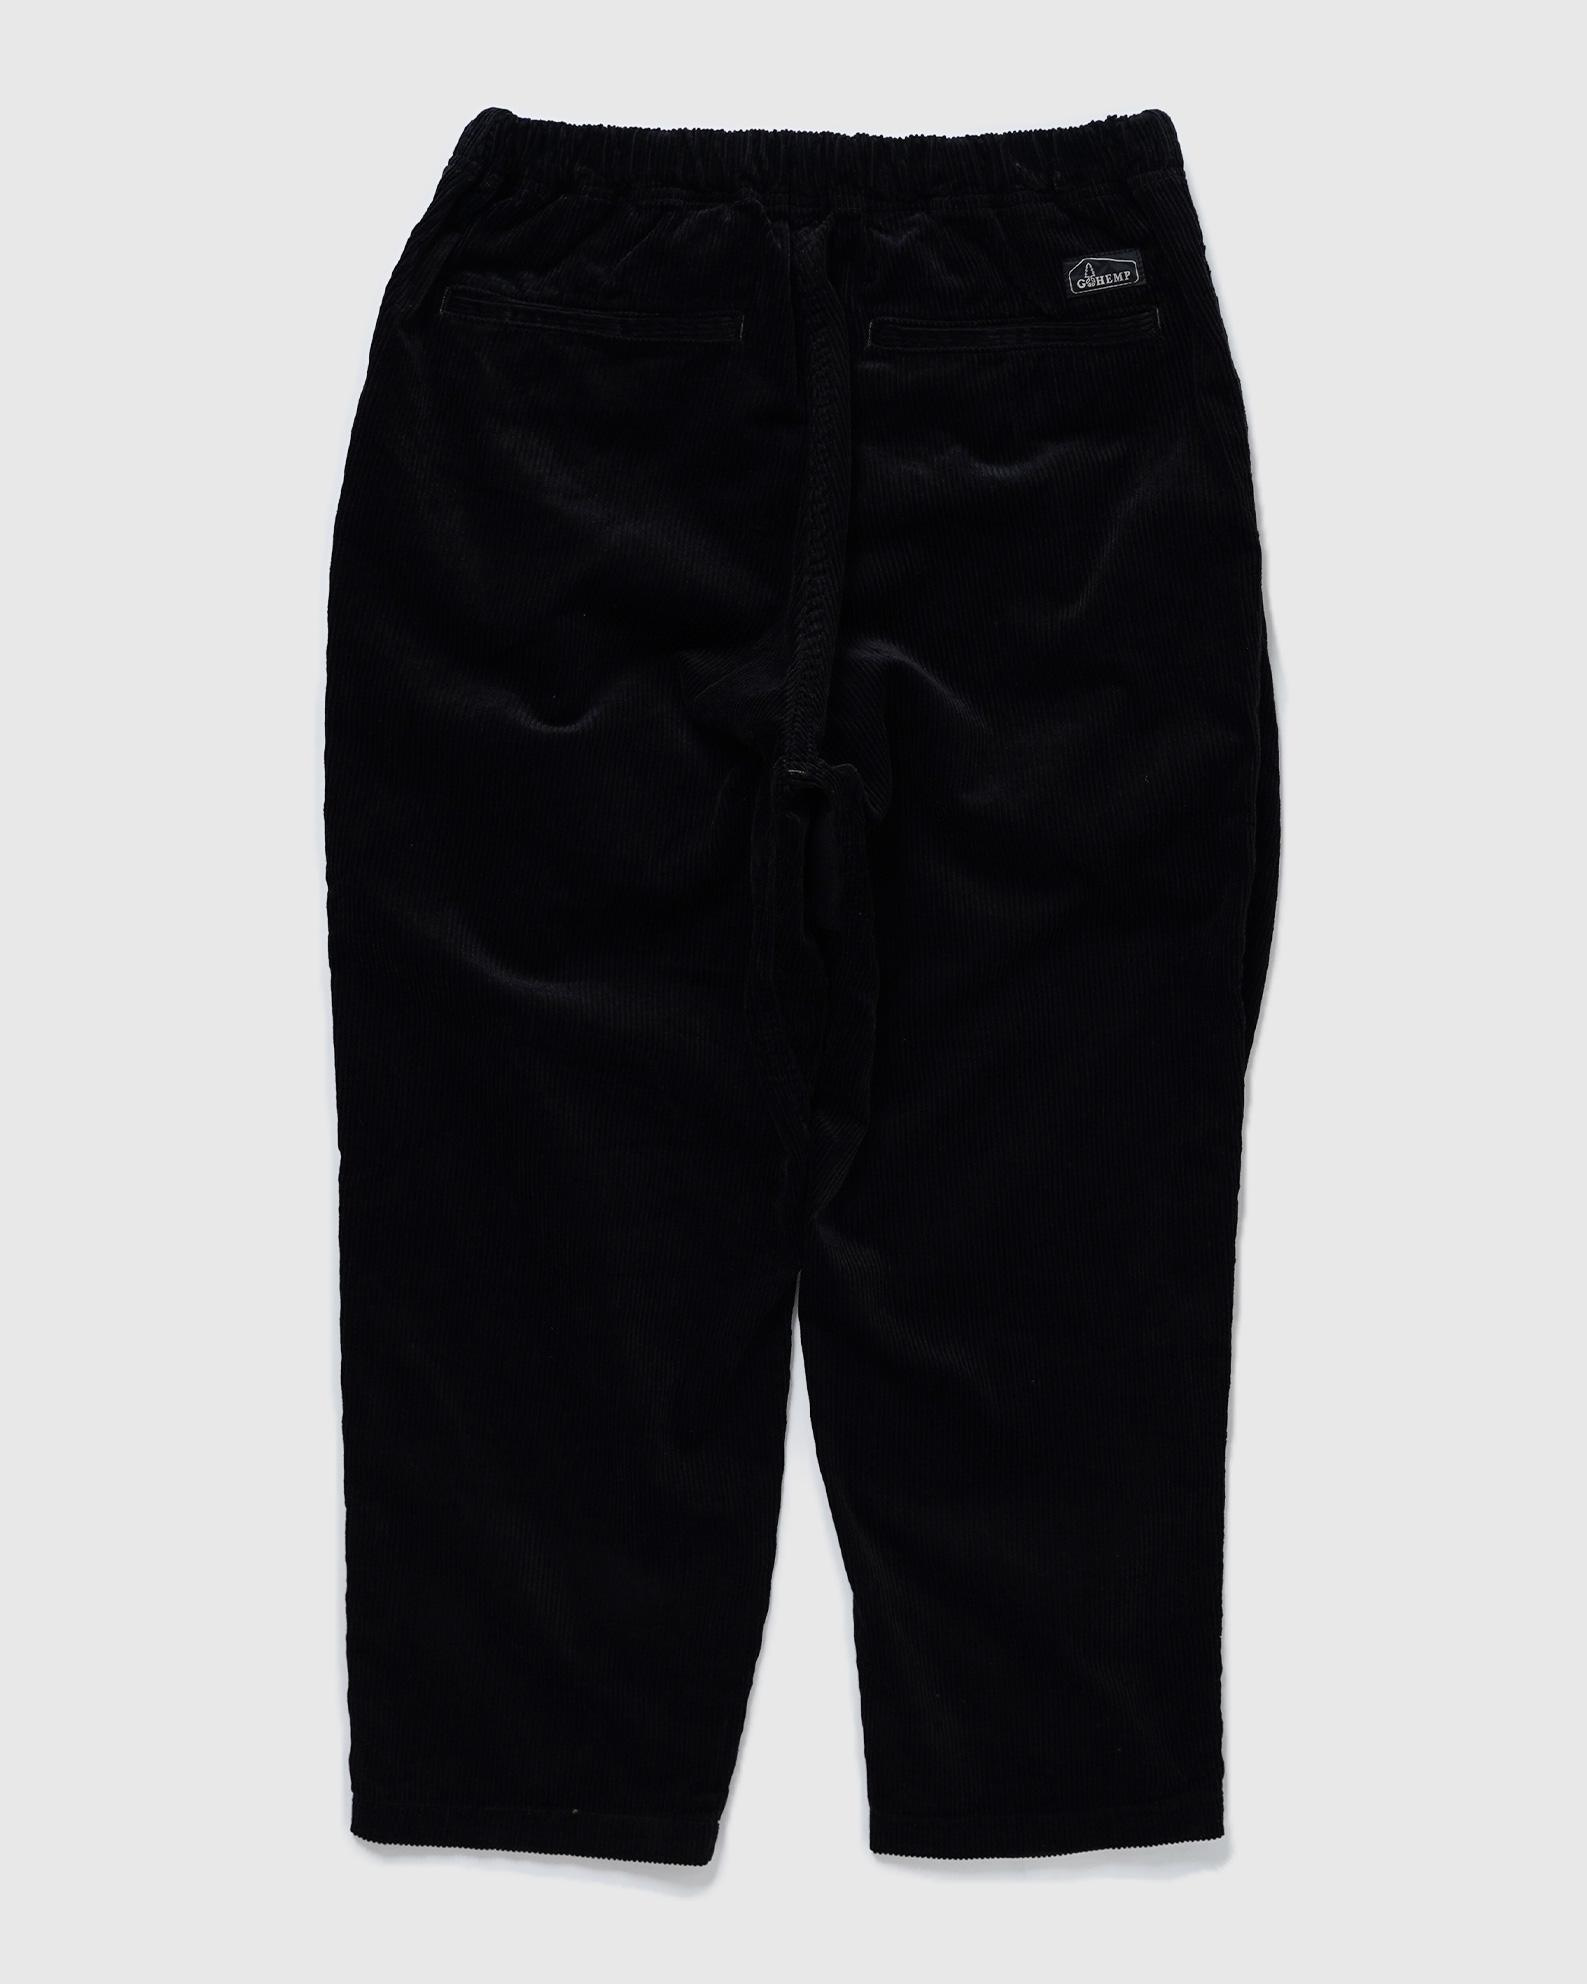 ONE TUCK ACTIVE PANTS